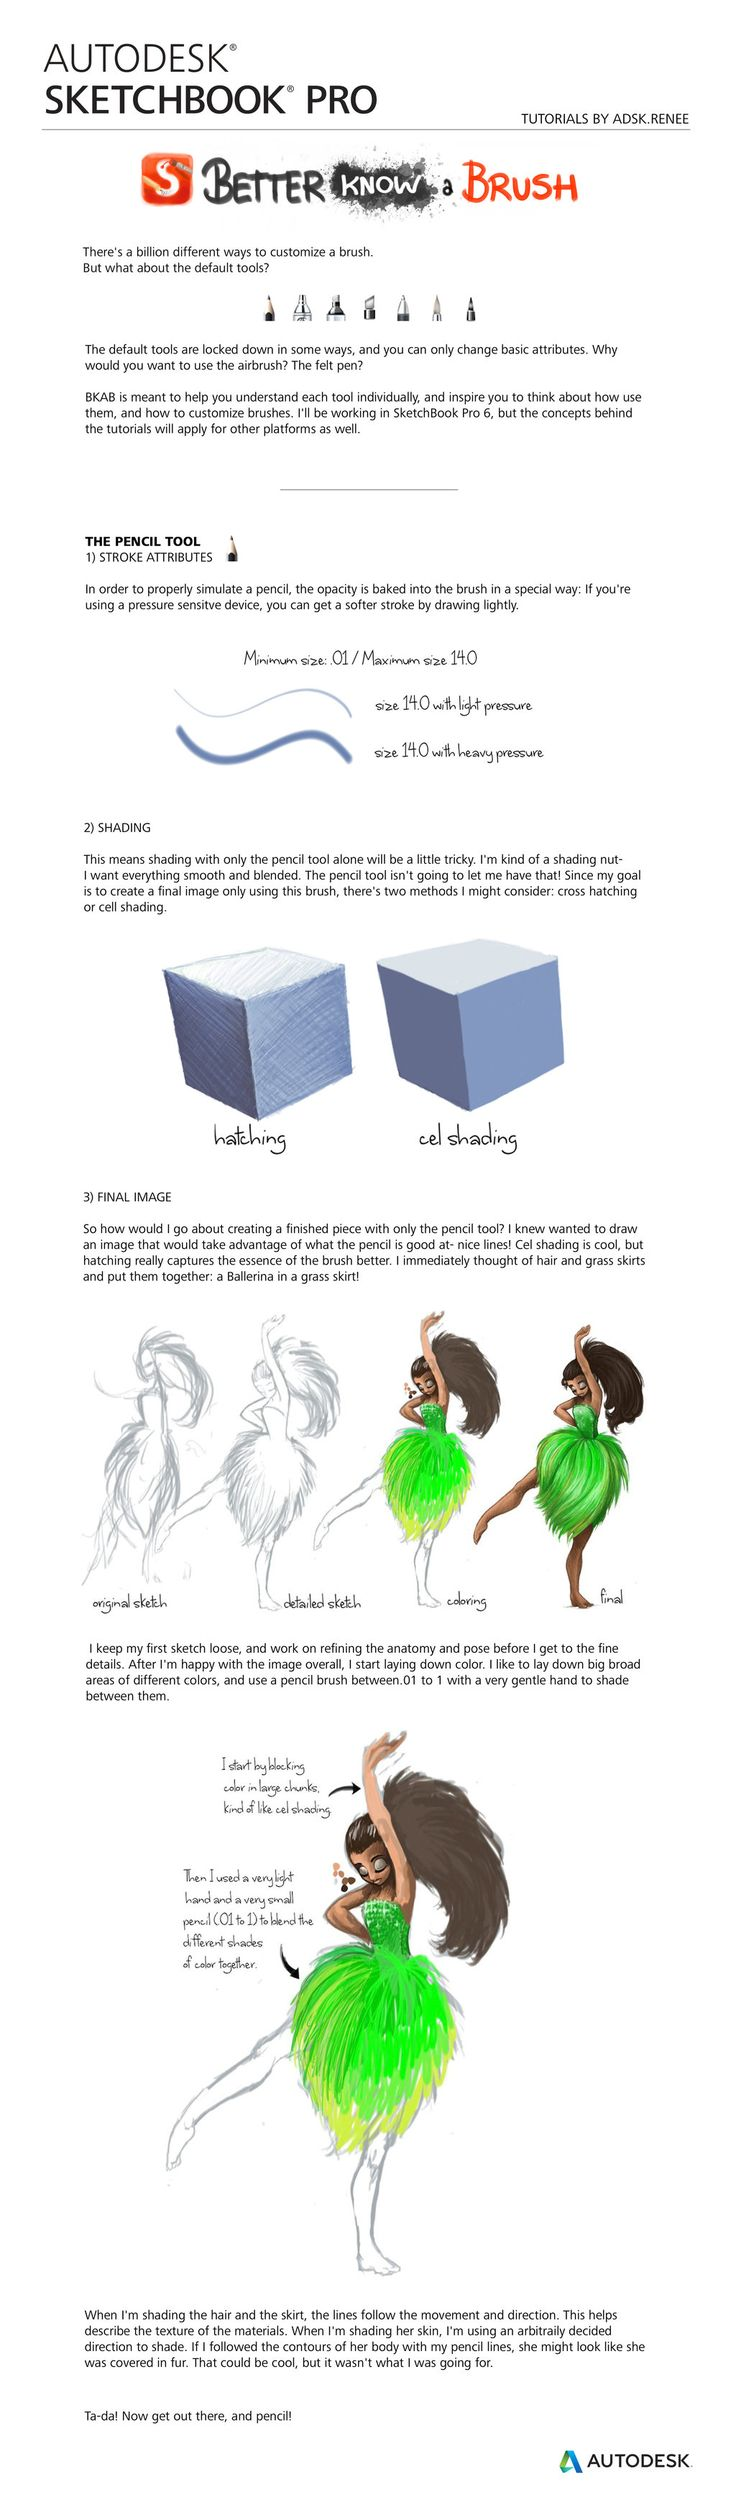 Autodesk SketchBook Pro :BKAB- the Pencil Tutorial by reneedicherri.dev… on @deviantART